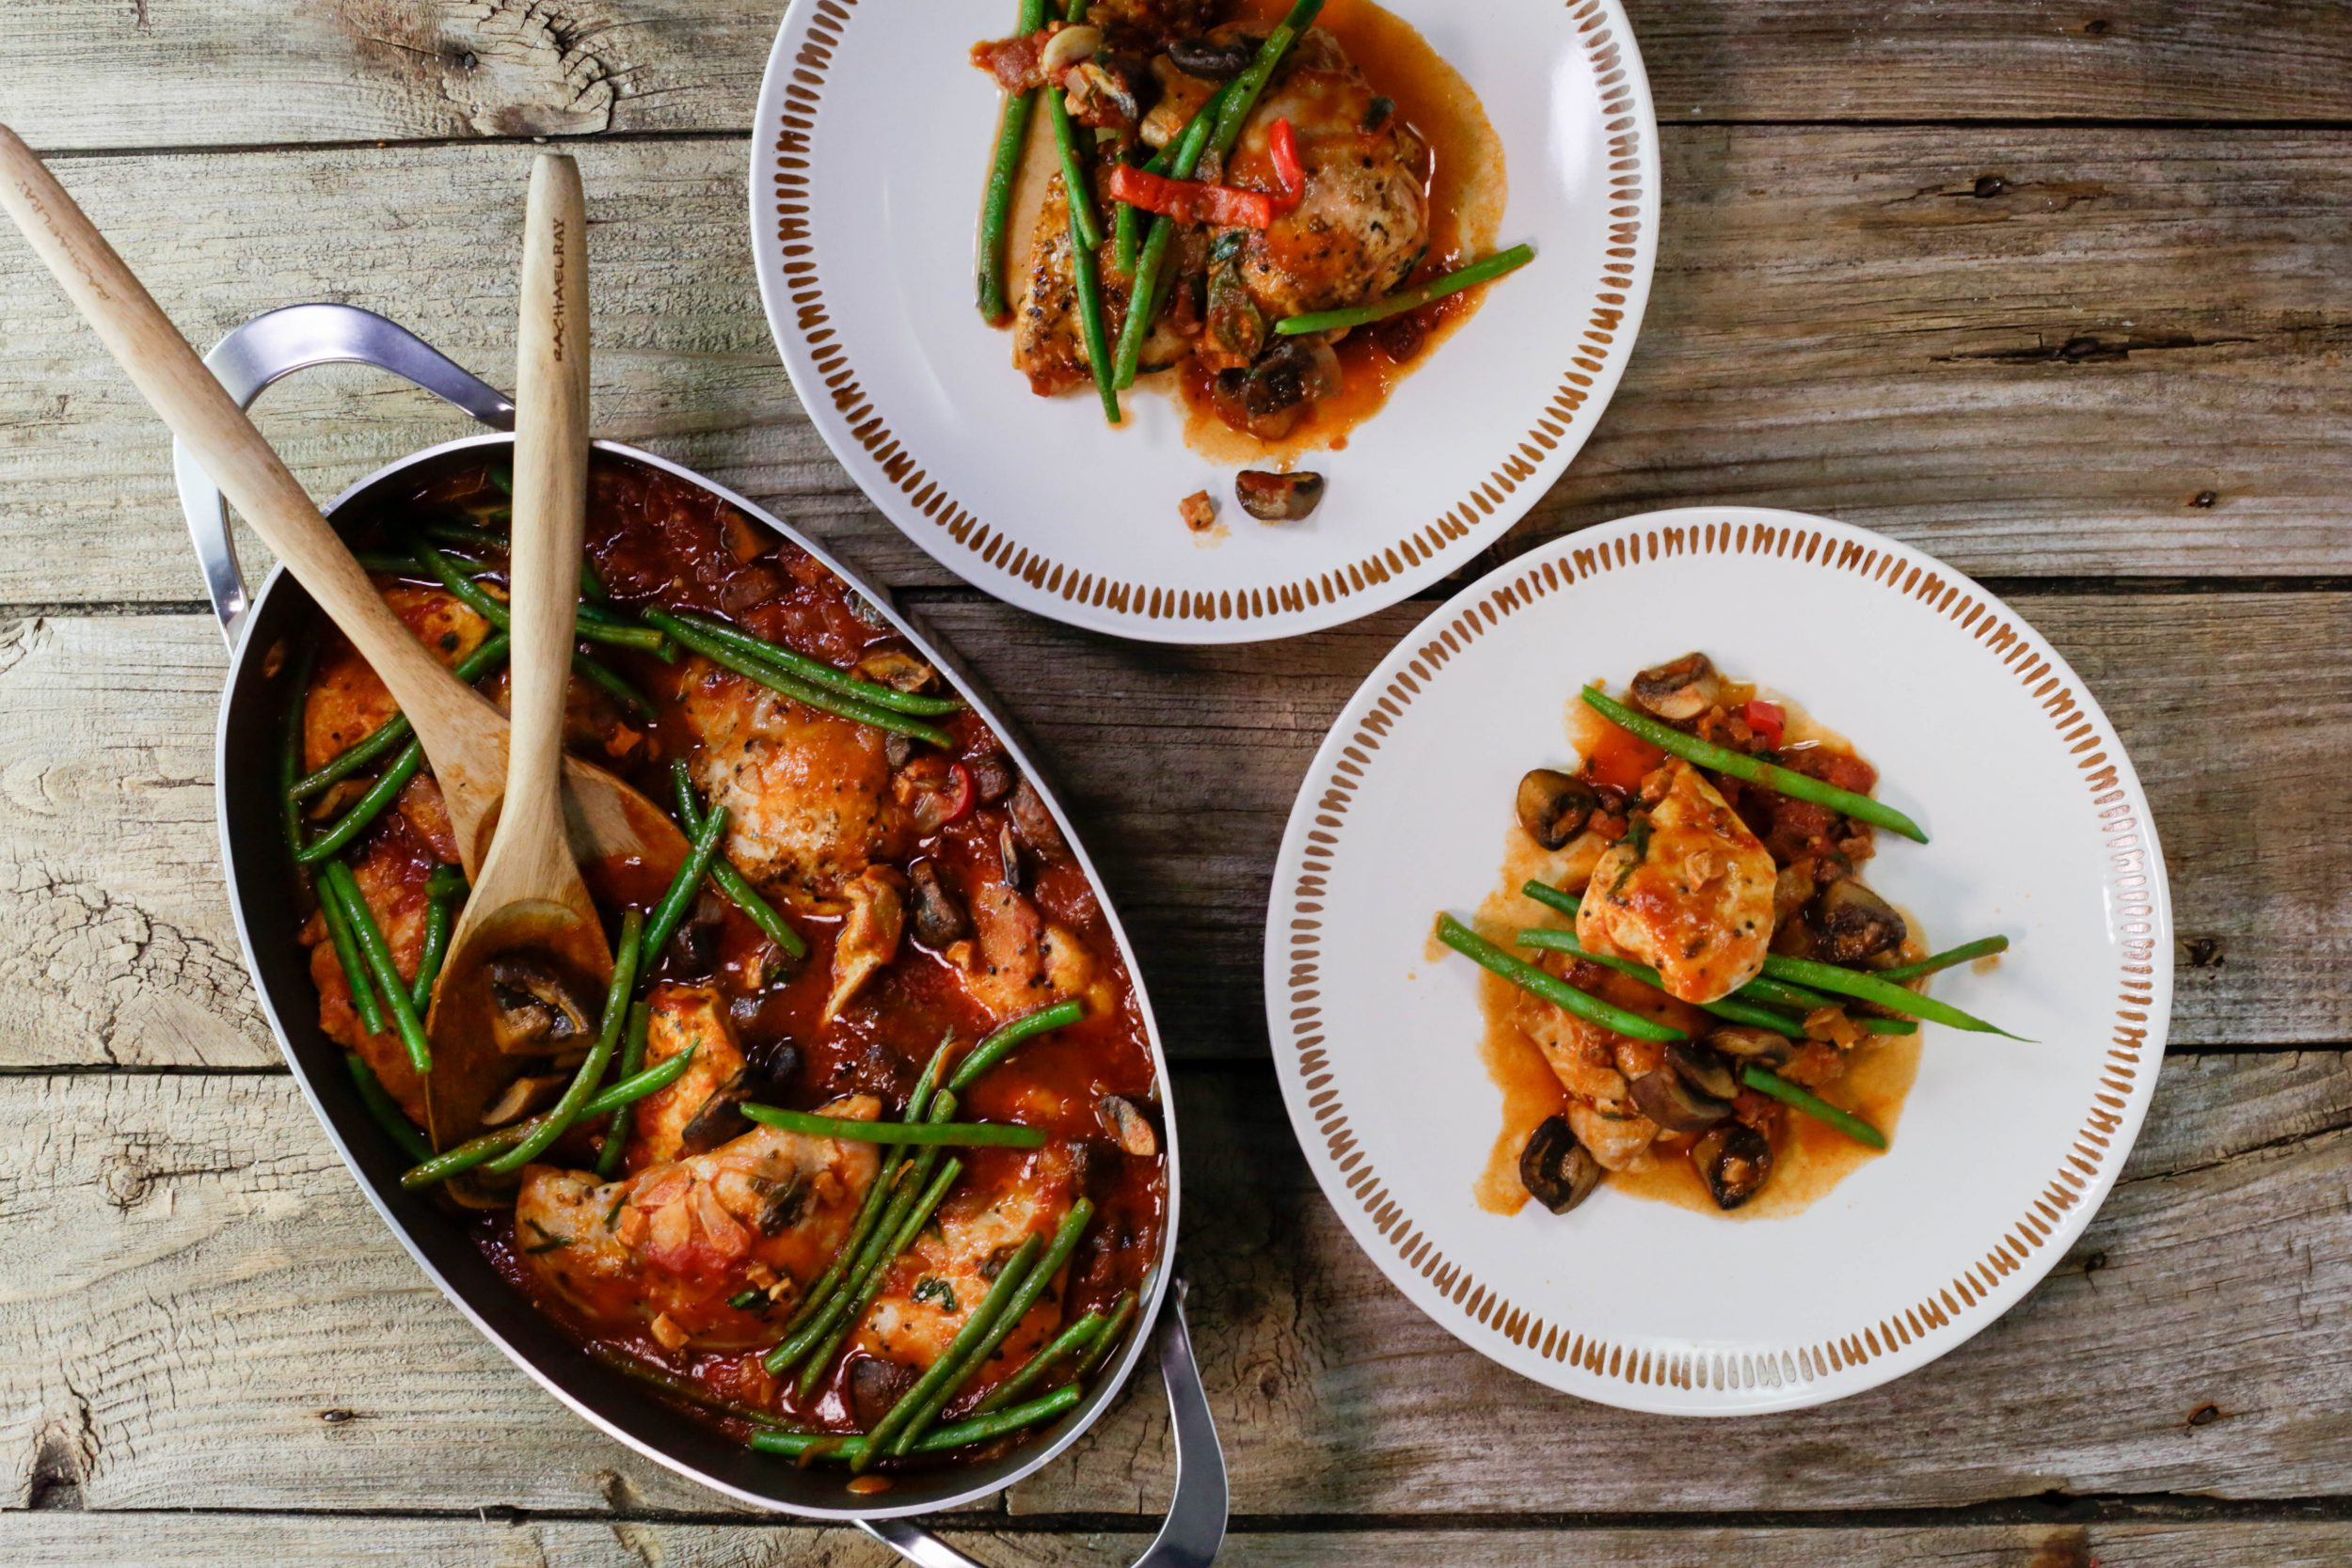 Cacciatore-Style Boneless Chicken One-Pot with Green Beans